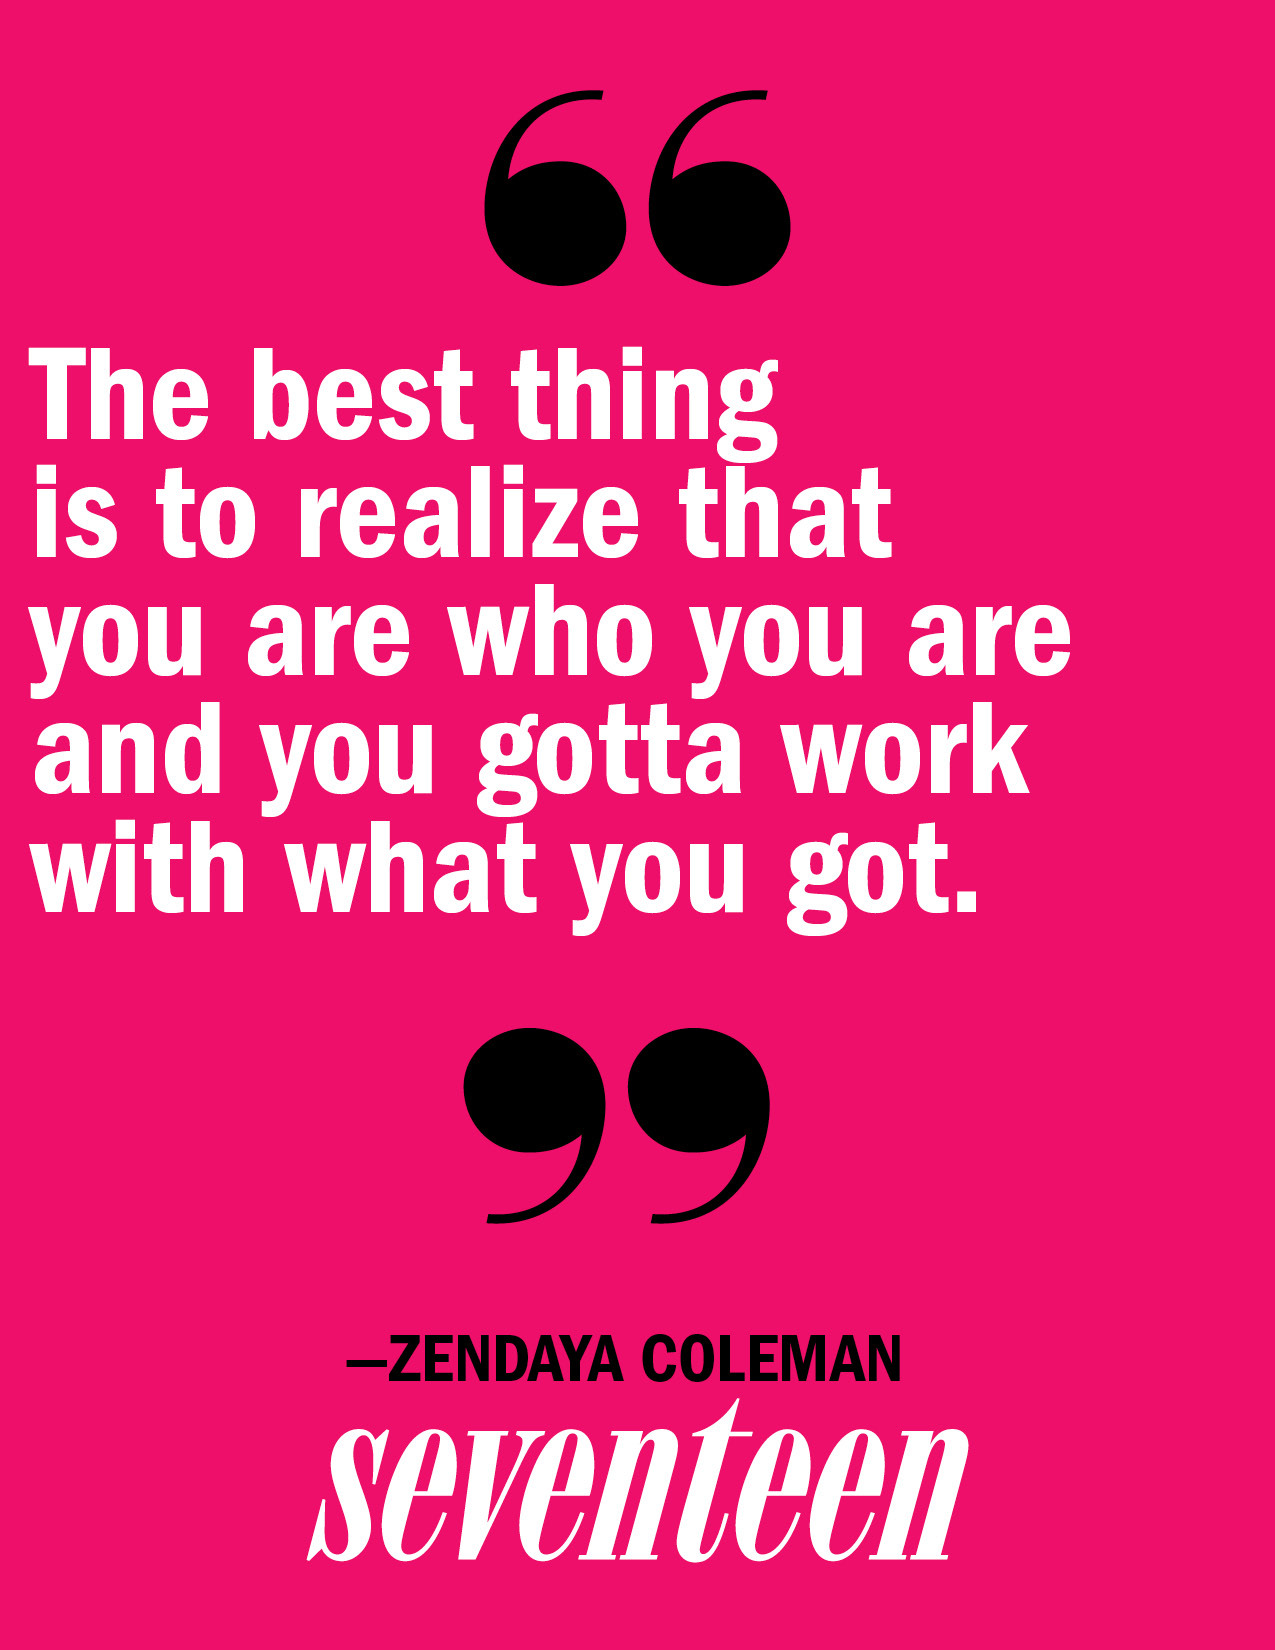 Read more from Zendaya, here.